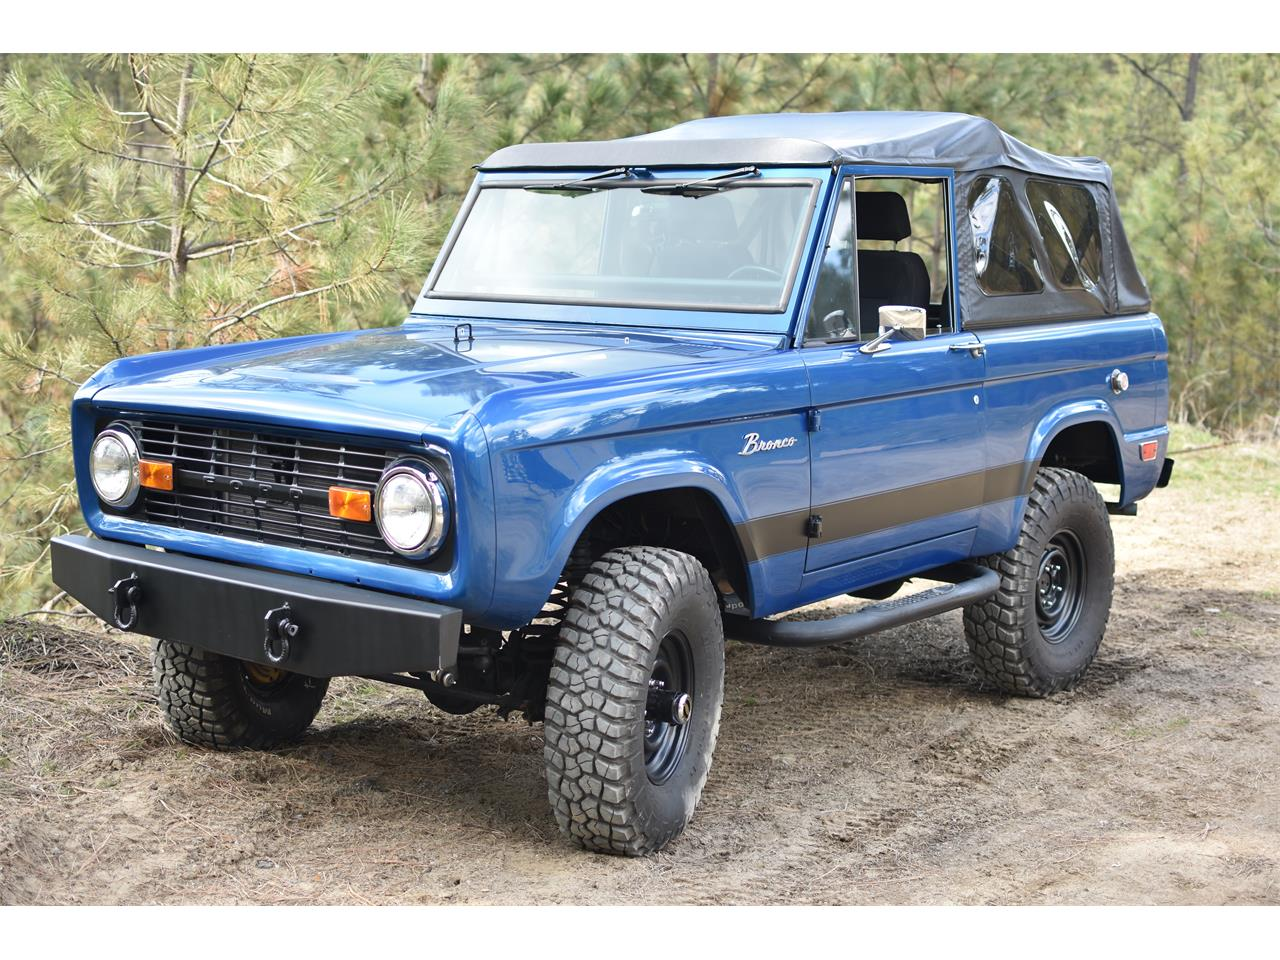 Large picture of classic 68 bronco nafh